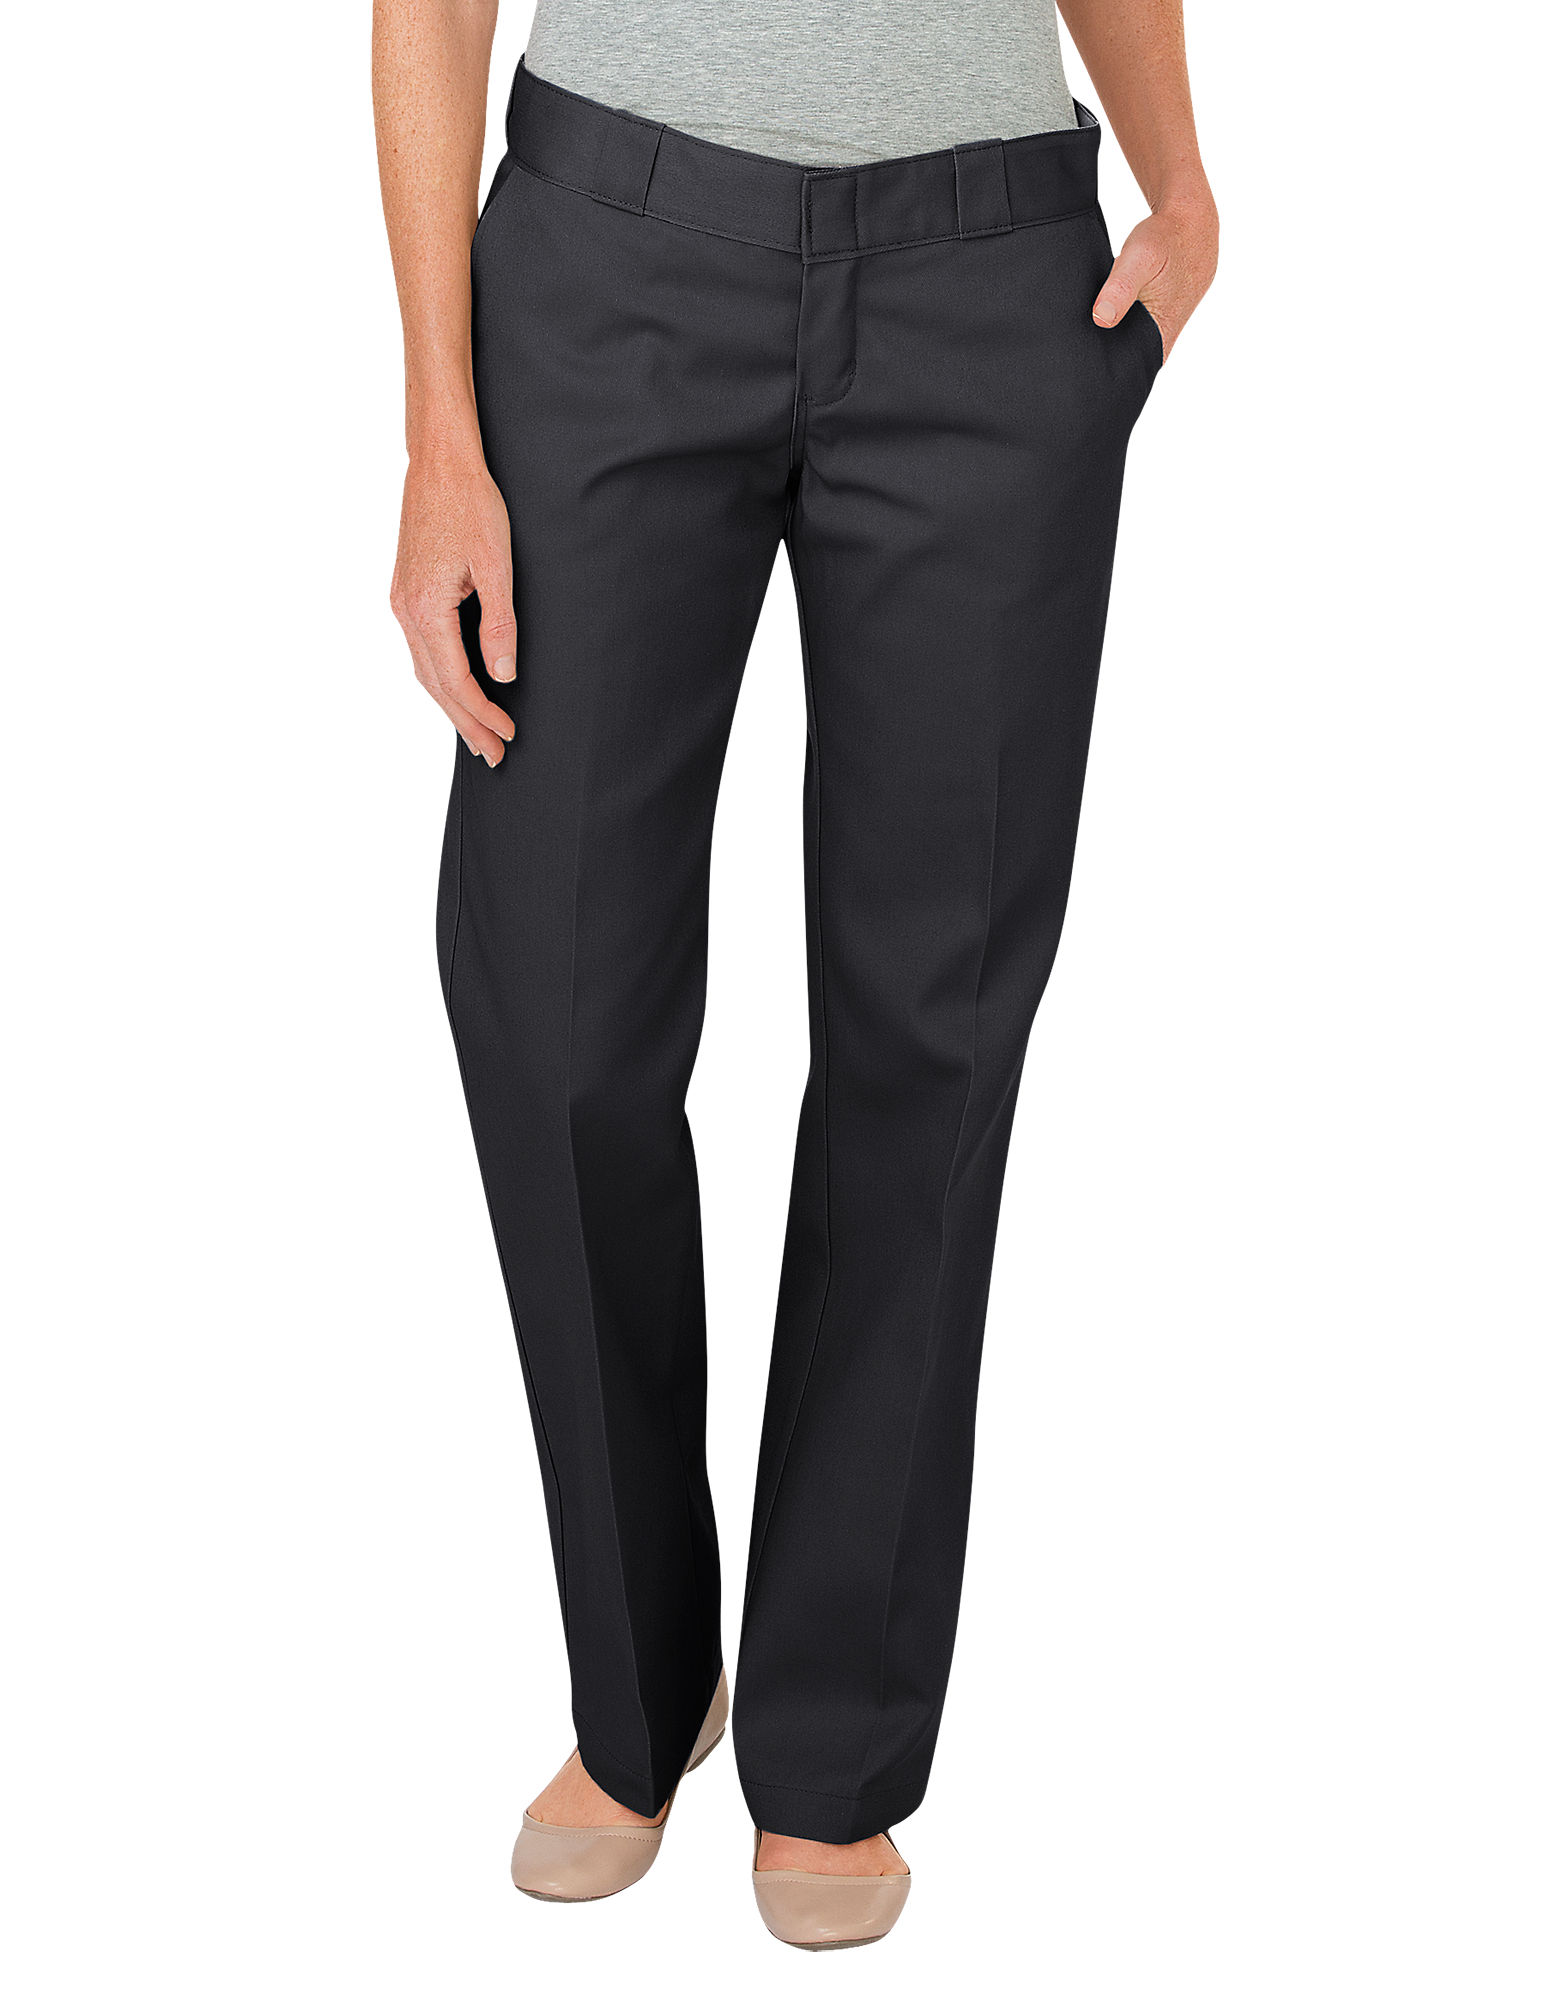 dickies womens pants photo - 1